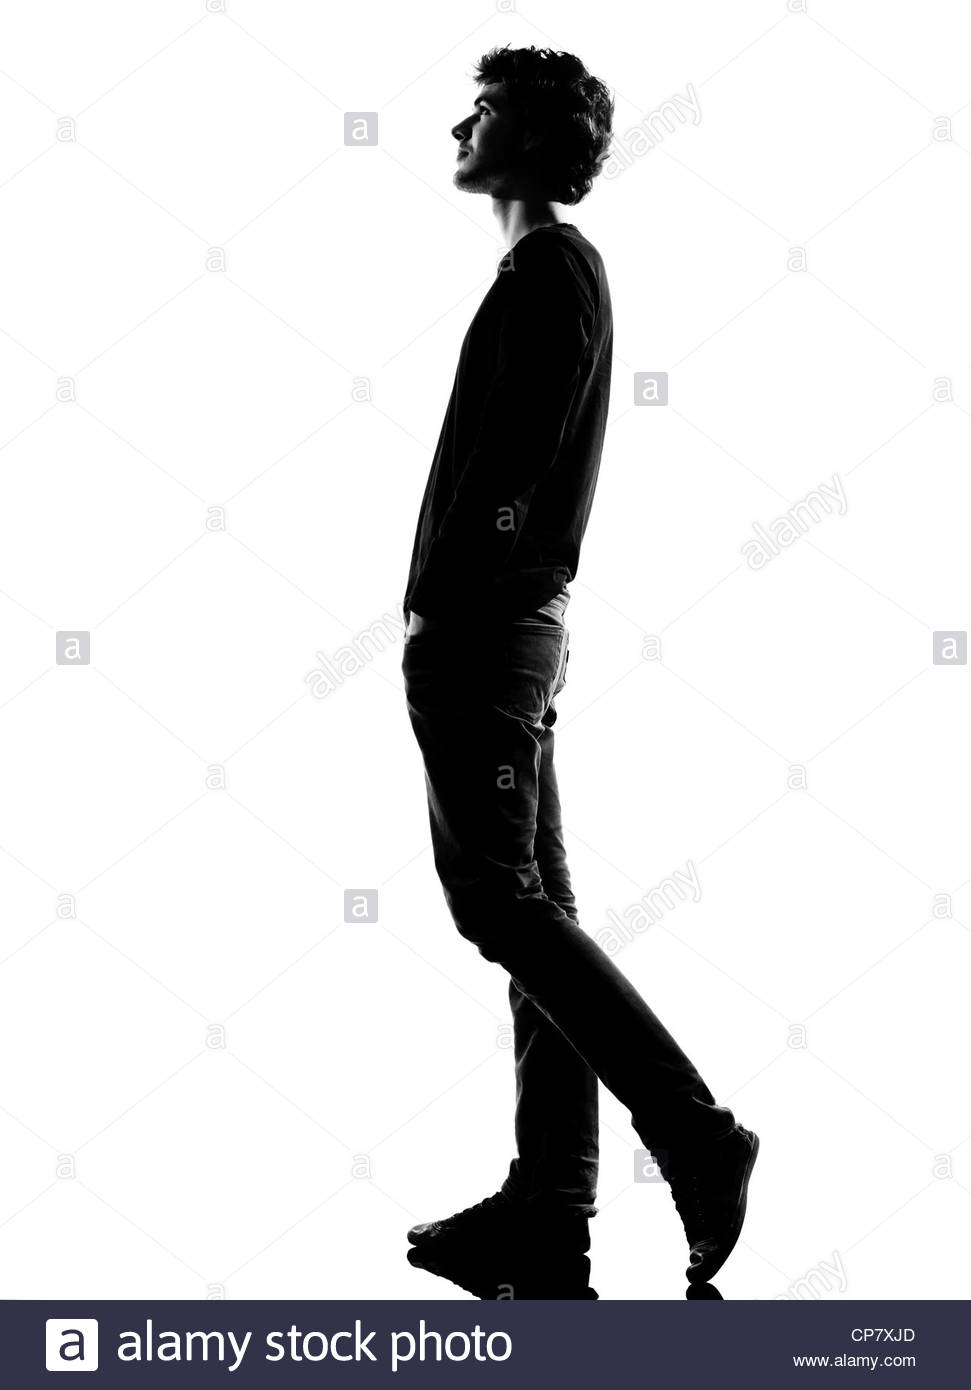 971x1390 Young Man Walking Silhouette In Studio Isolated On White